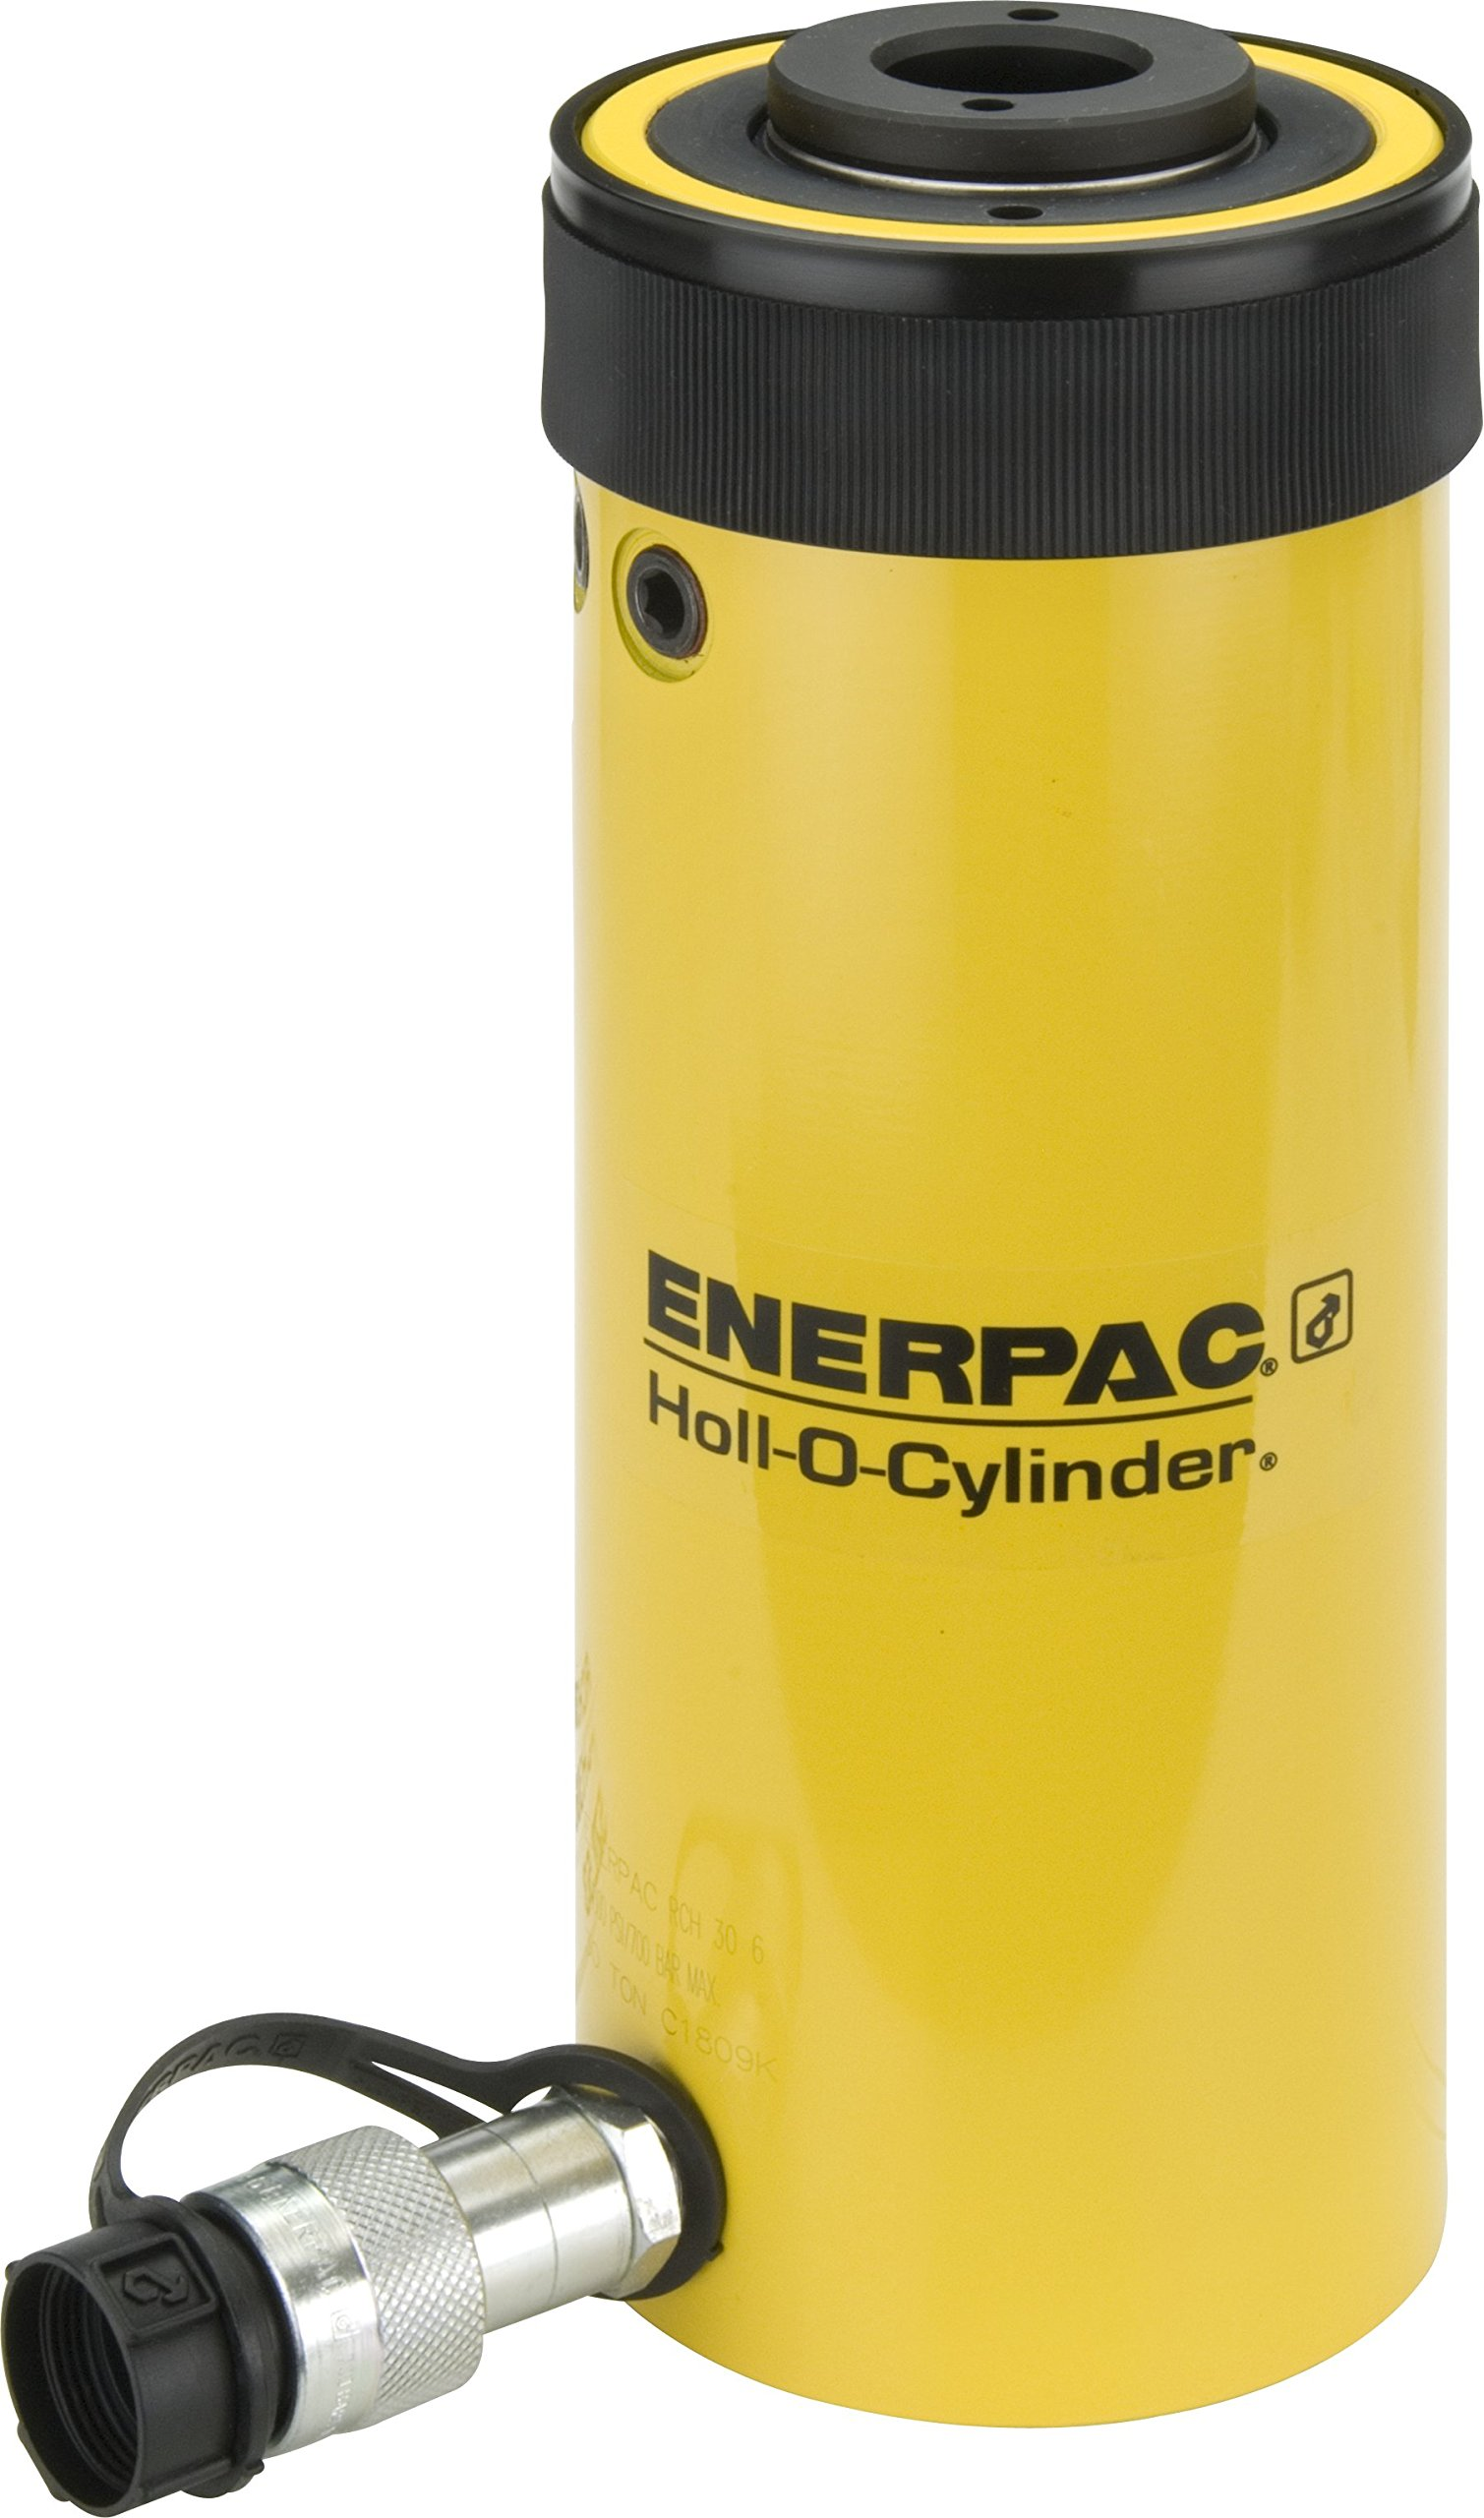 Enerpac RCH-206 Single-Acting Hollow-Plunger Hydraulic Cylinder with 20 Ton Capacity, Single Port, 6.10'' Stroke Length